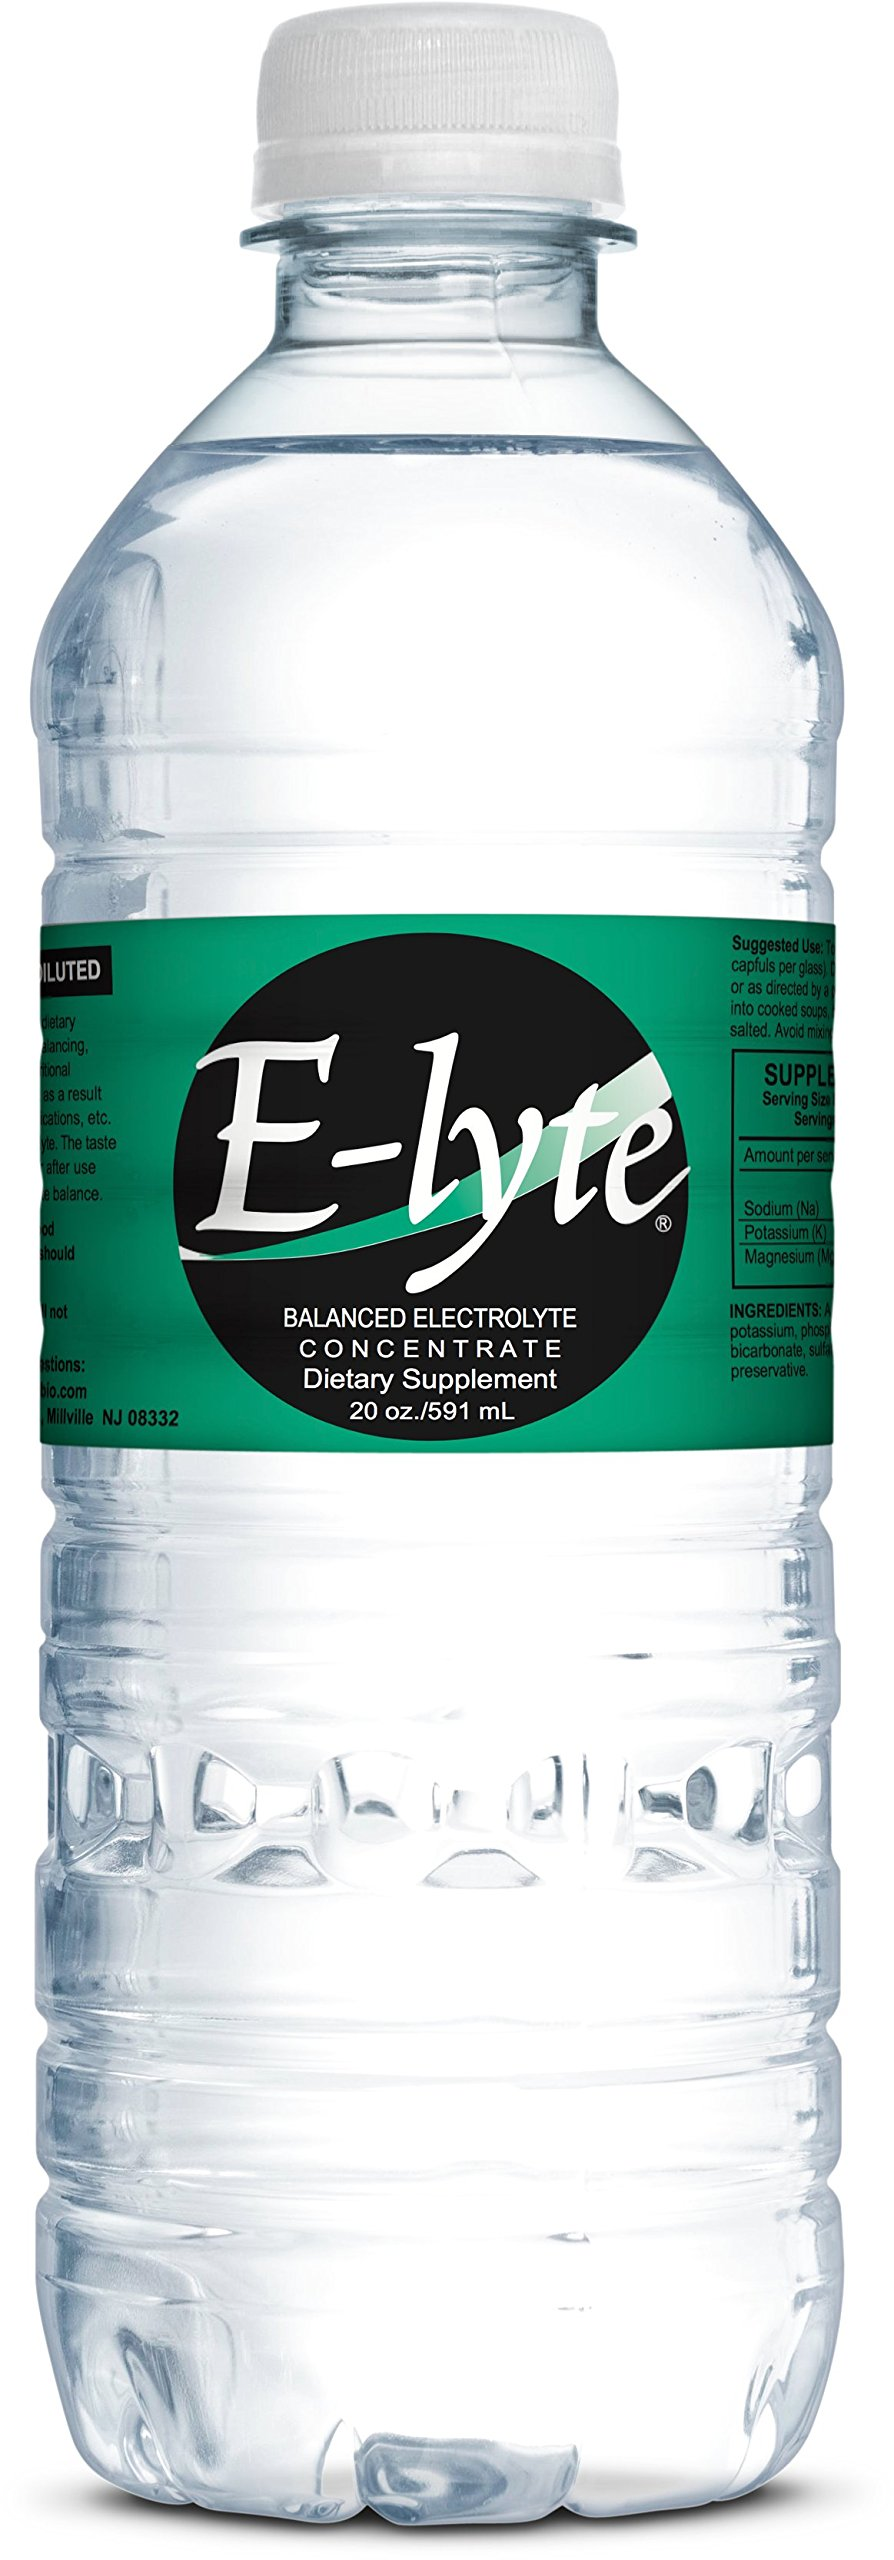 BodyBio - E-lyte Balanced Electrolyte Concentrate, Elyte with Sodium, Magnesium & Potassium, 20oz, 40 Servings